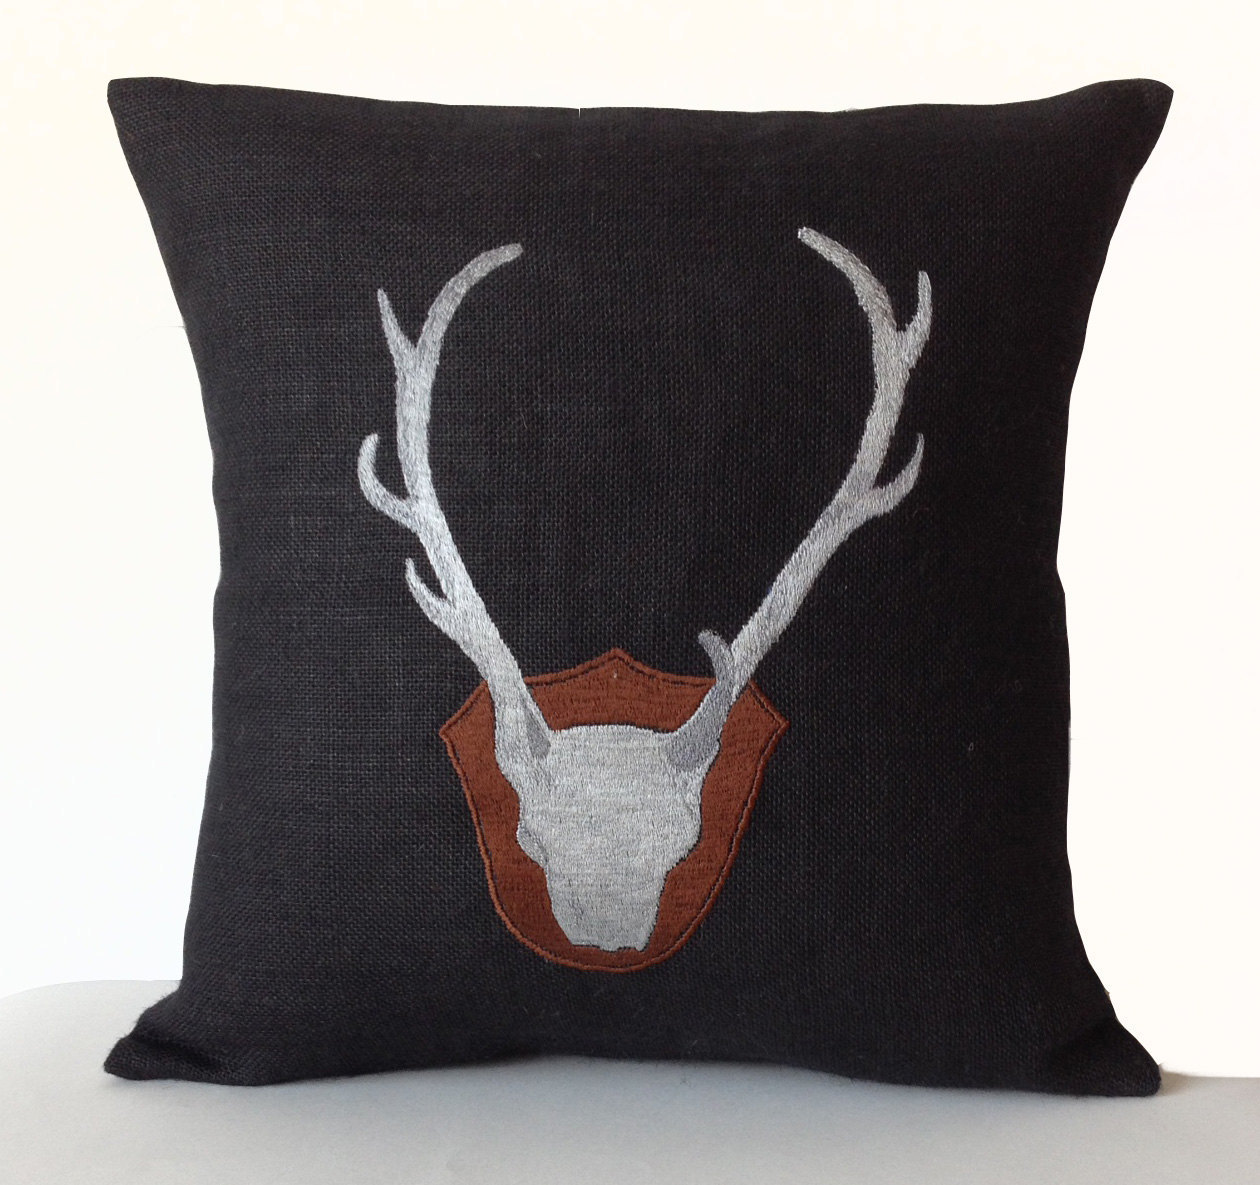 Burlap Throw Pillow Cover -Deer Antler Silhoutte Pillows -Burlap Cushion 20x20- - Bed Pillows